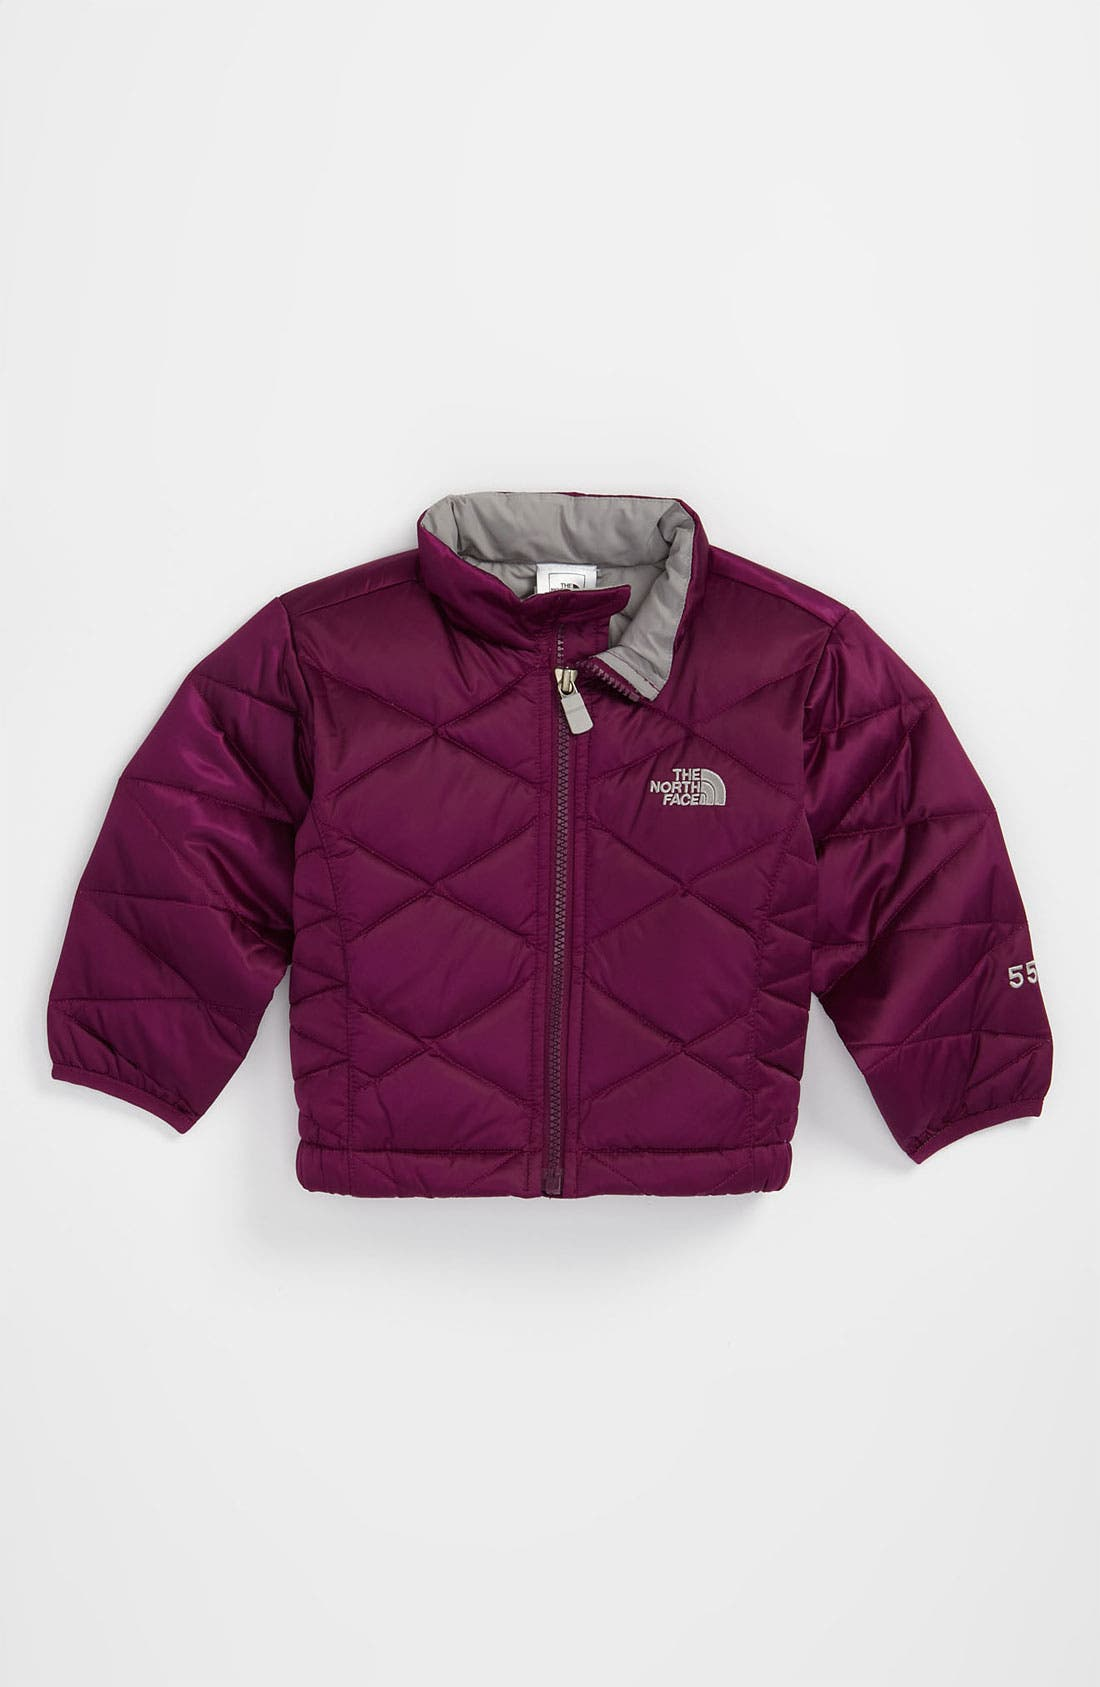 Alternate Image 1 Selected - The North Face 'Aconcagua' Jacket (Infant)